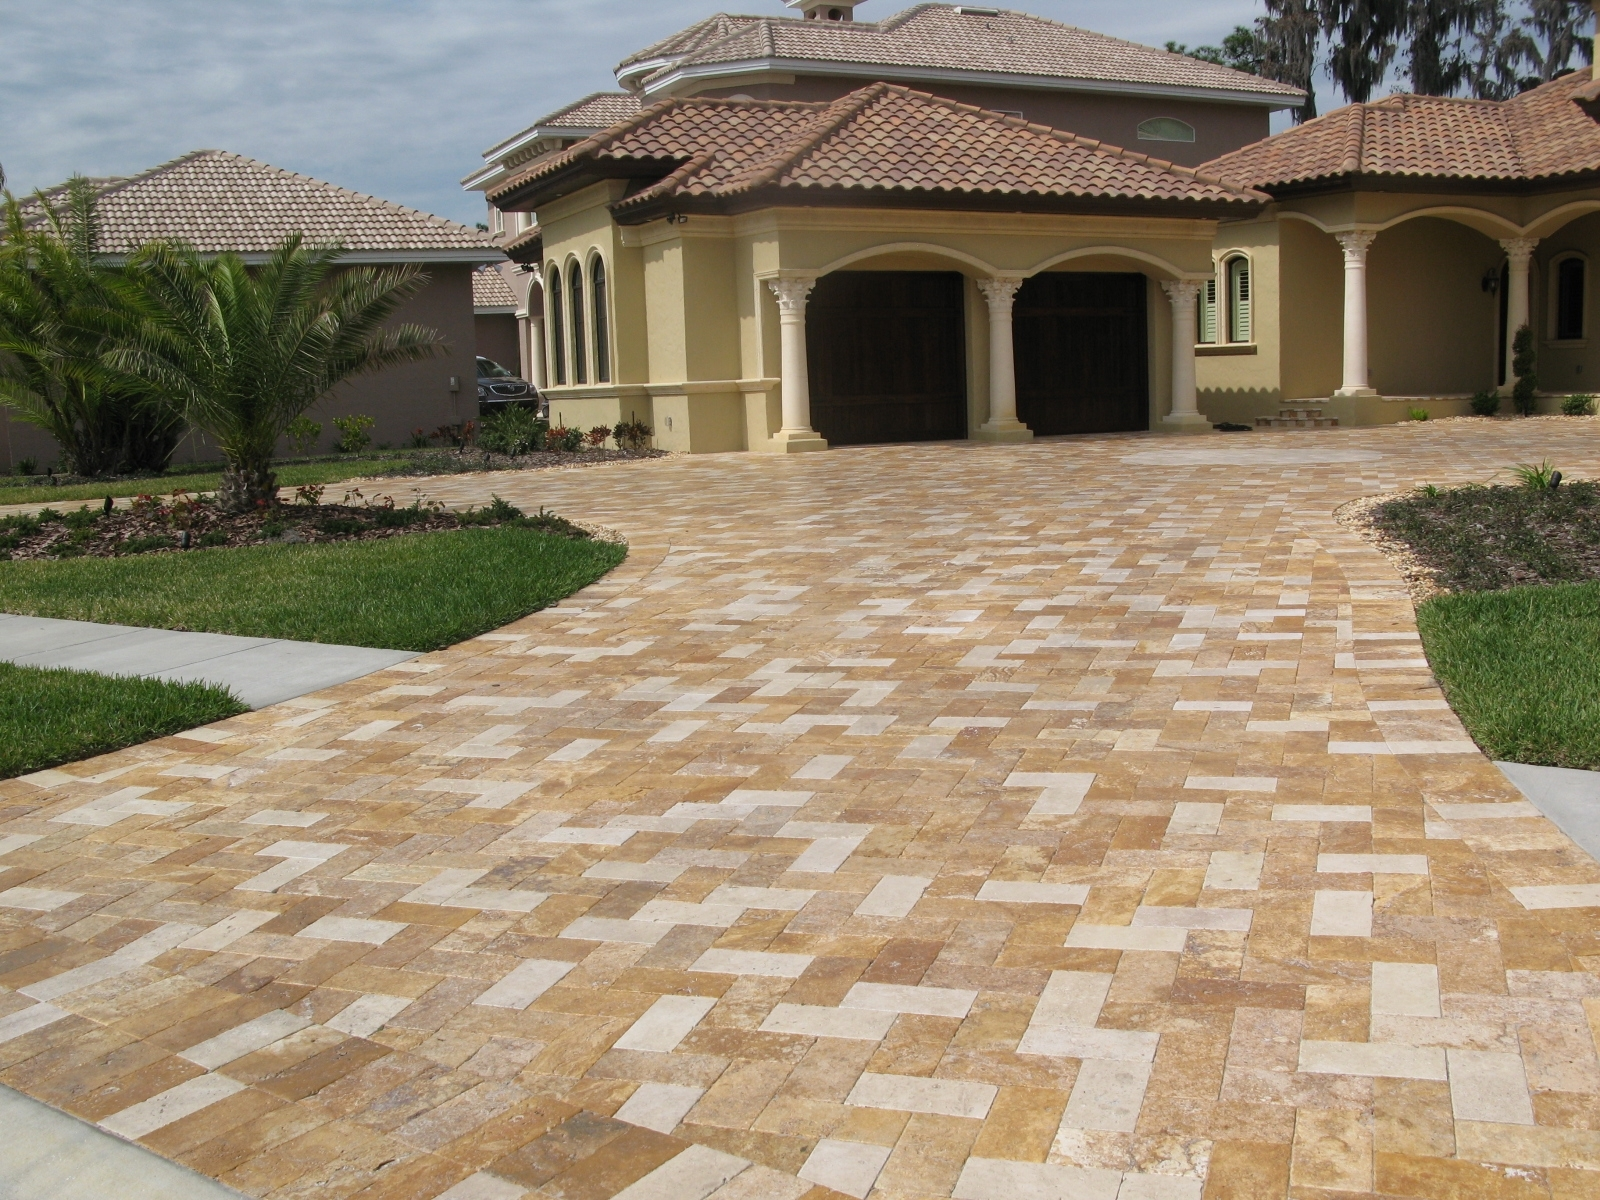 Brick Paver Showroom Tampa Bays Premier Supplier And Installer